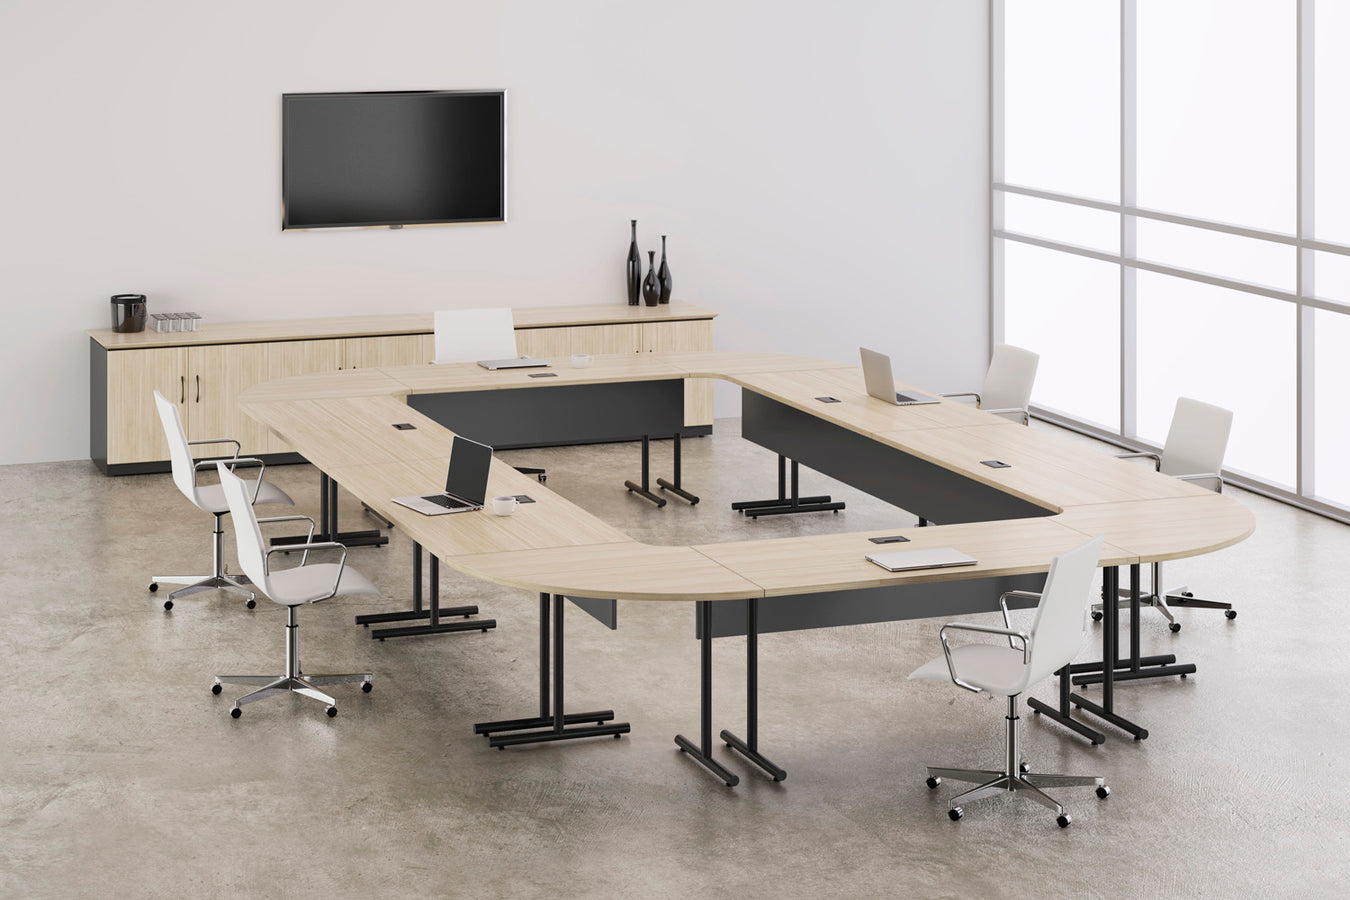 Deskmaker's Training Table Collection